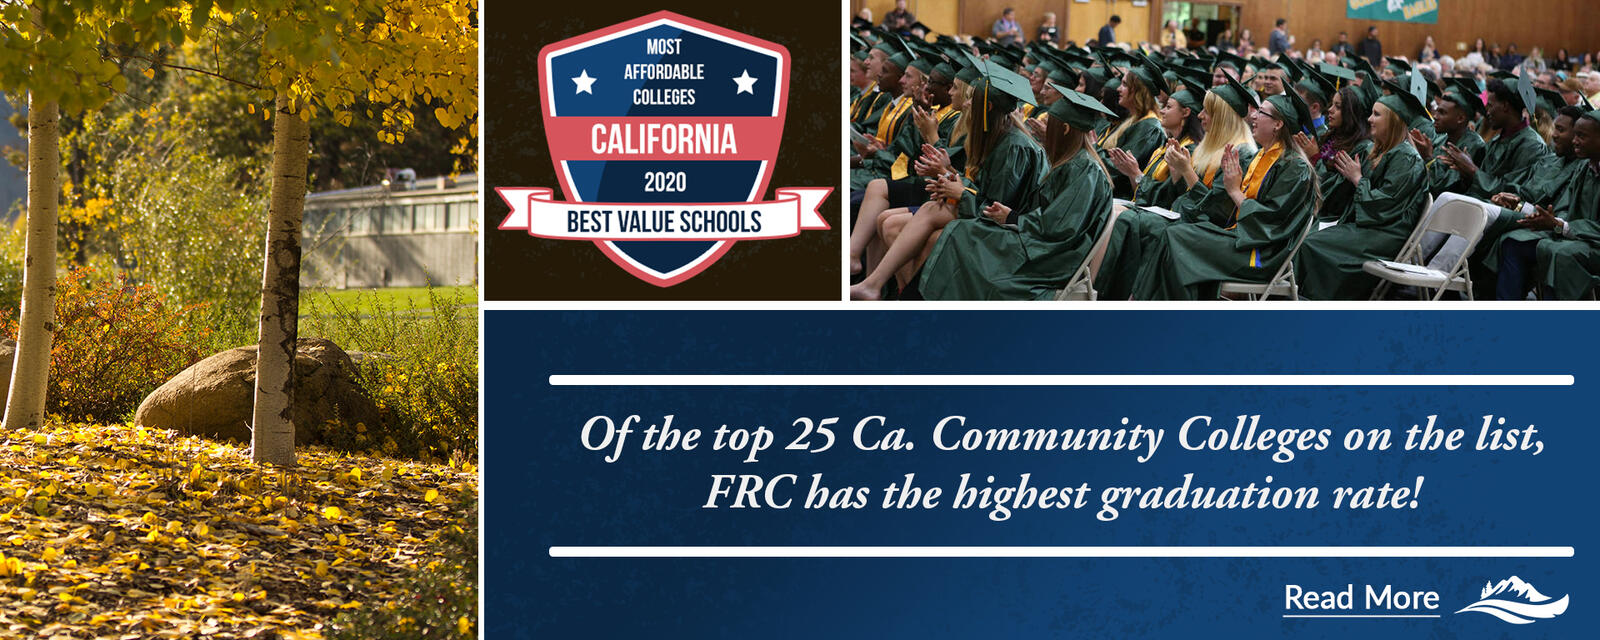 FRC is recognized as one of the Best Value Schools in CA.